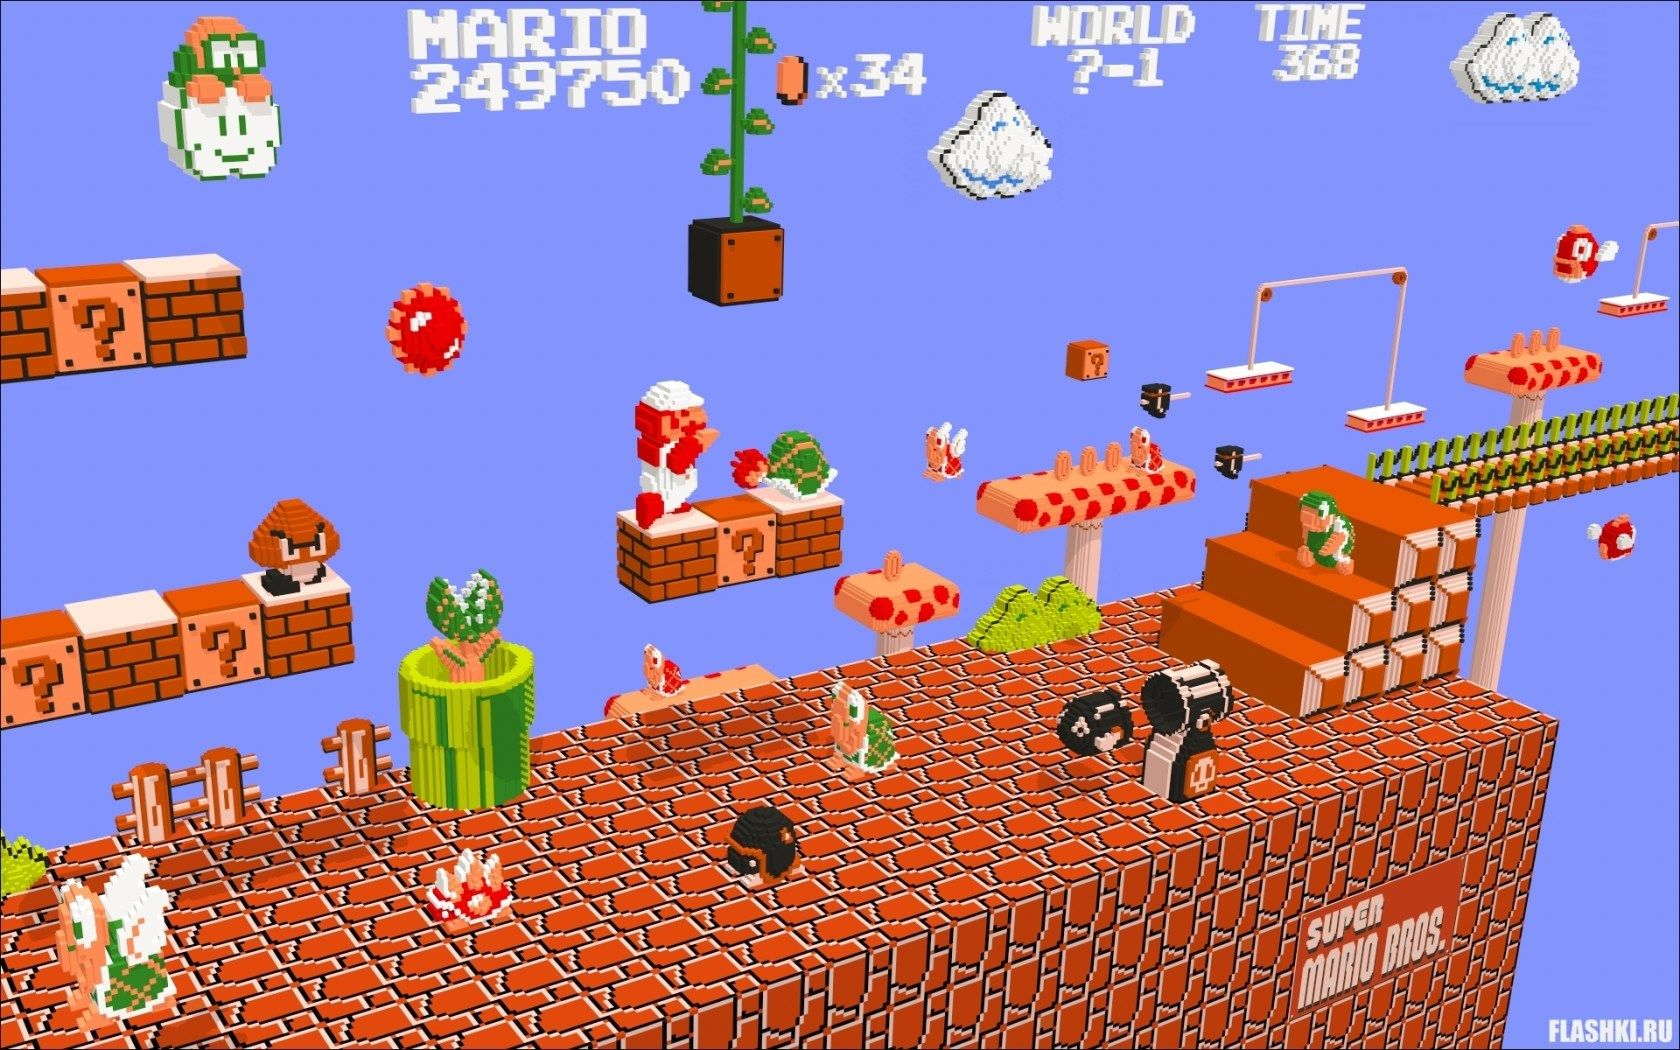 2017-03-08 - hd widescreen wallpapers - super mario bros pic